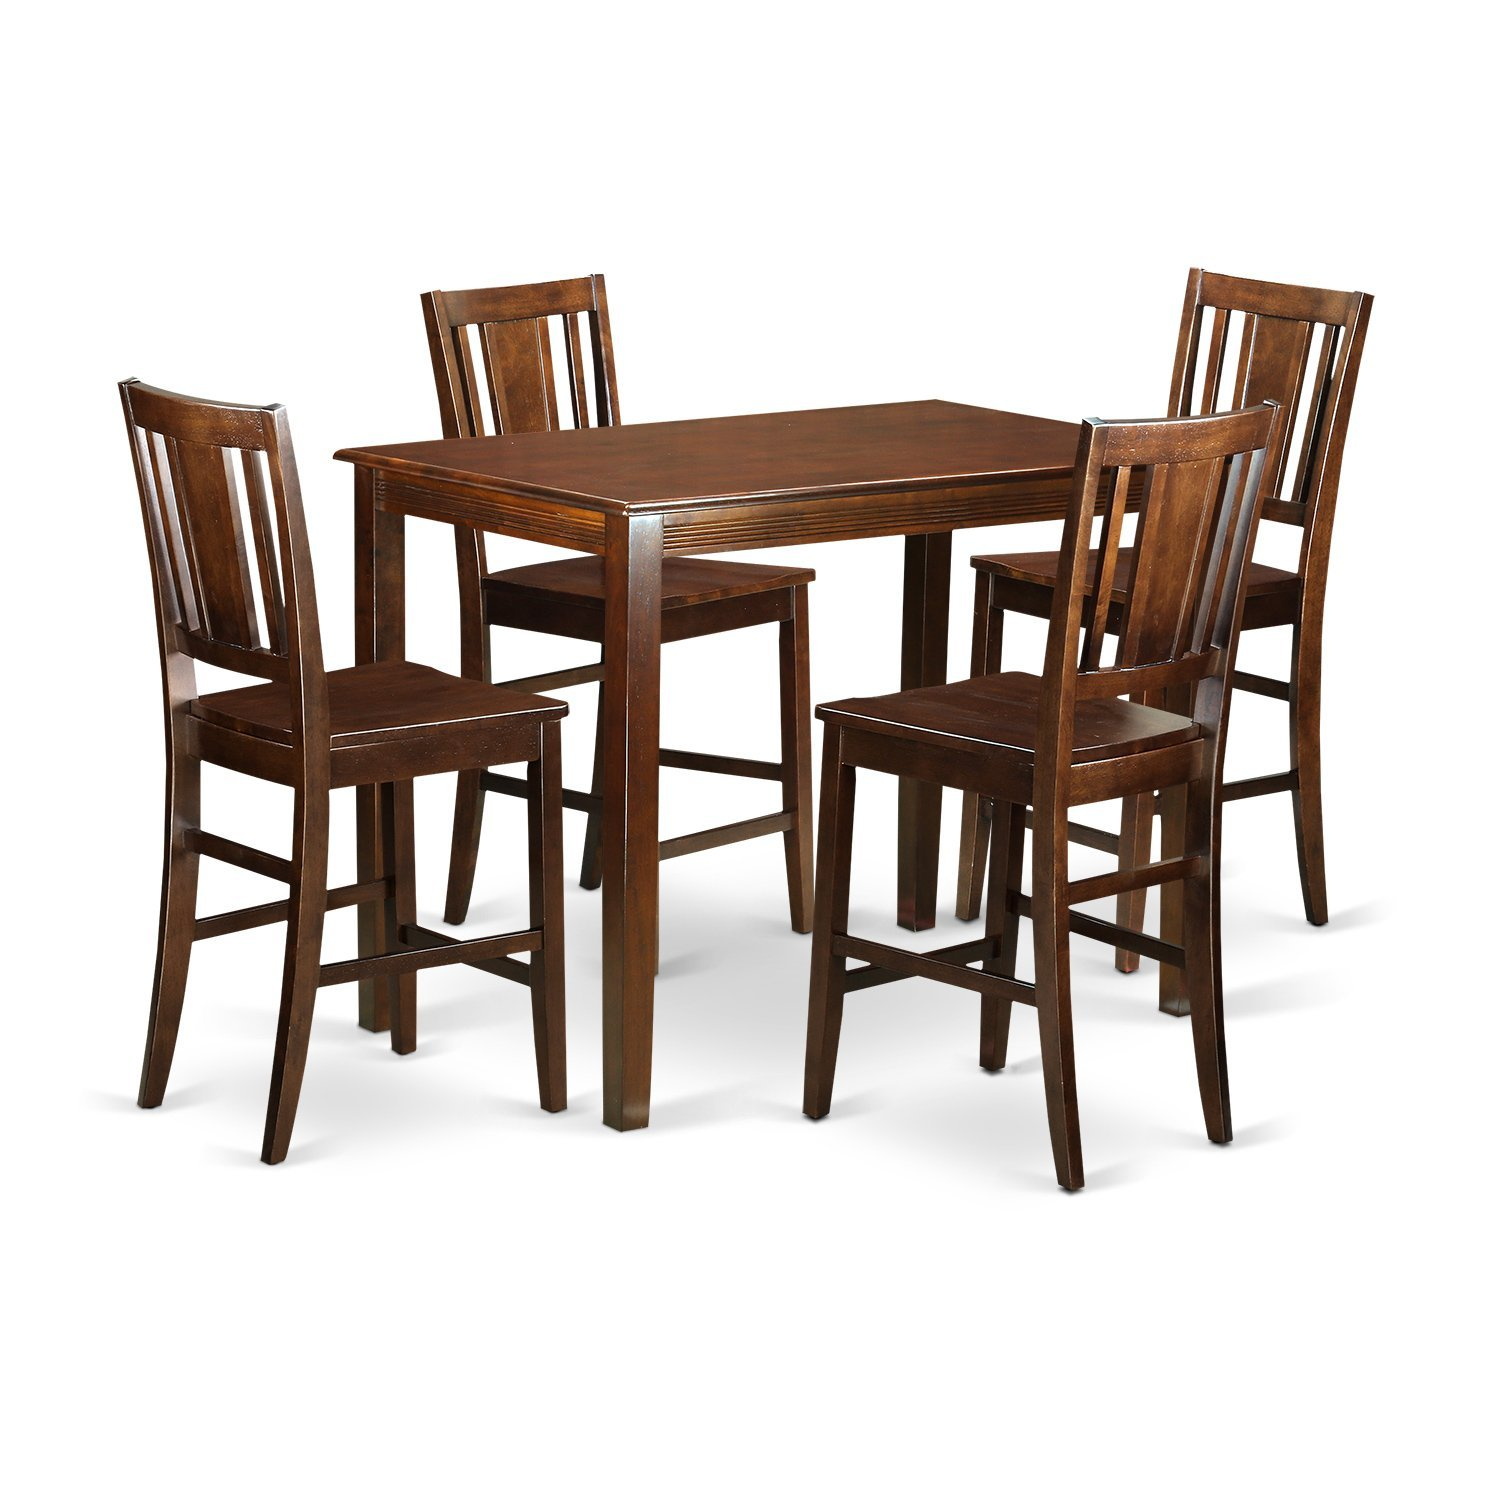 Amazon.com: East West Furniture YABU5 MAH W 5 Piece Counter Height High  Table And 4 Kitchen Chairs Set: Kitchen U0026 Dining